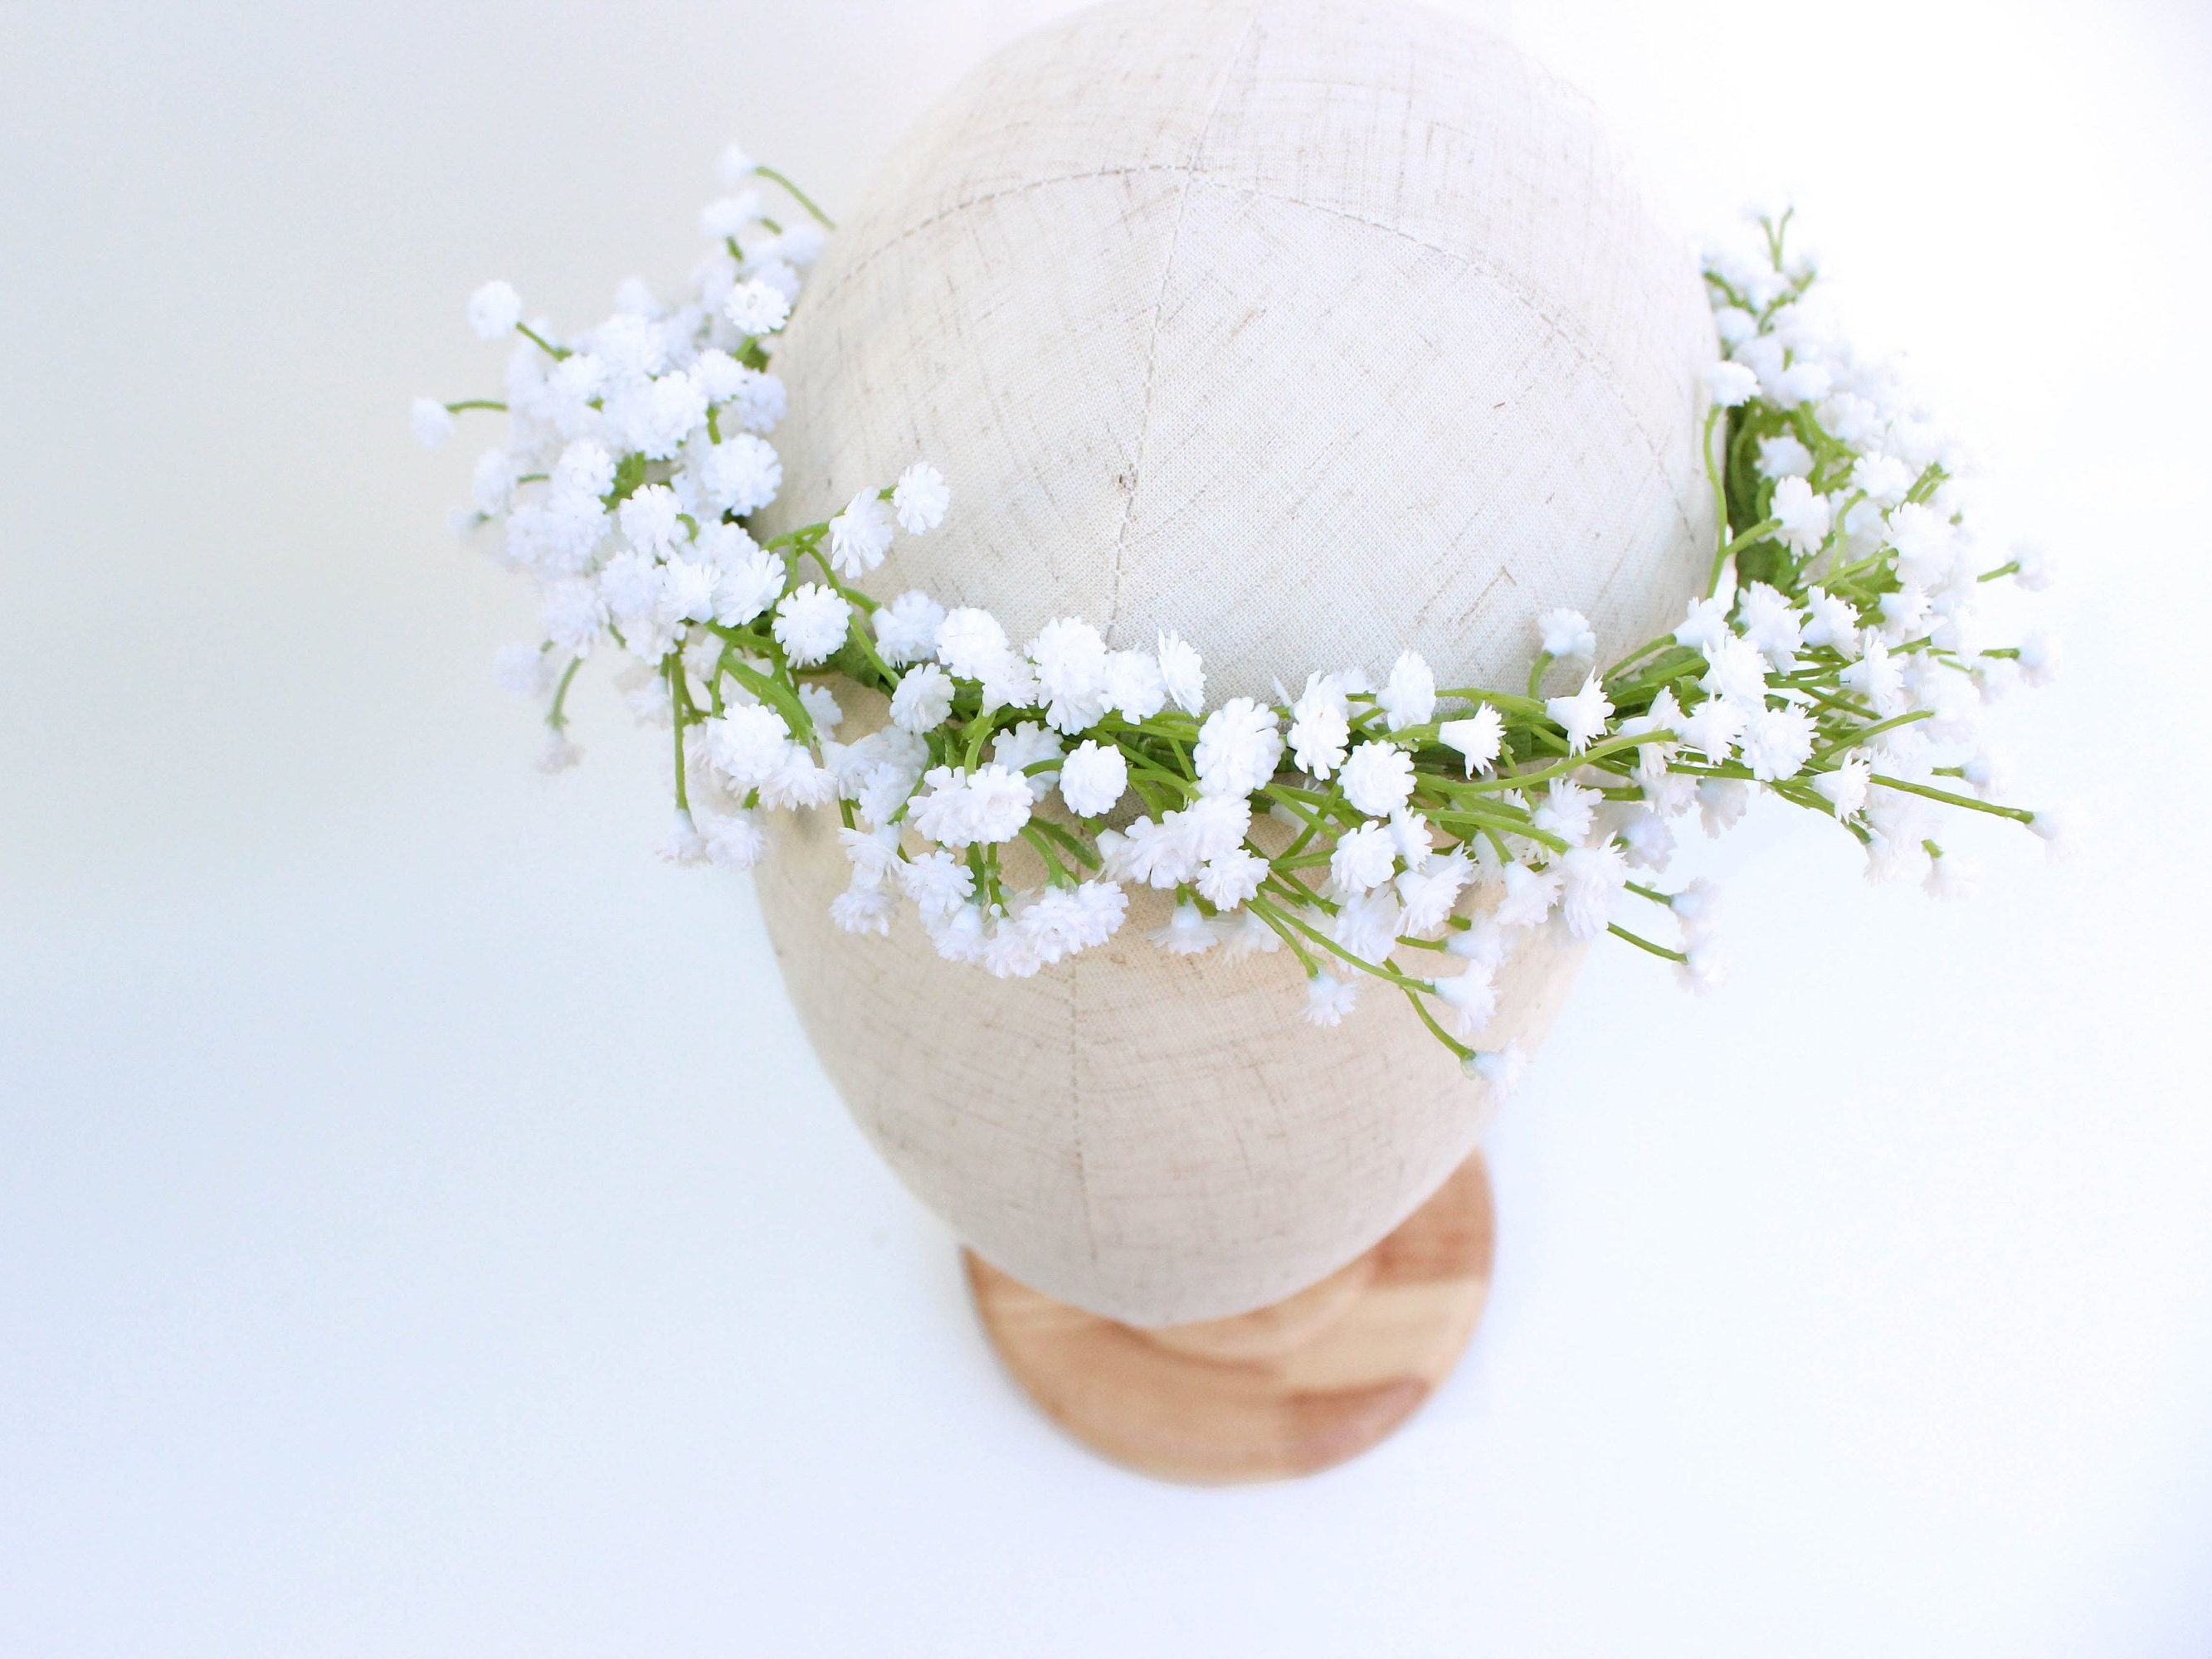 Babies breath flower crown made with artificial babys breath babies breath flower crown made with artificial babys breath white babys breath faux floral halo greenery rustic crown best seller izmirmasajfo